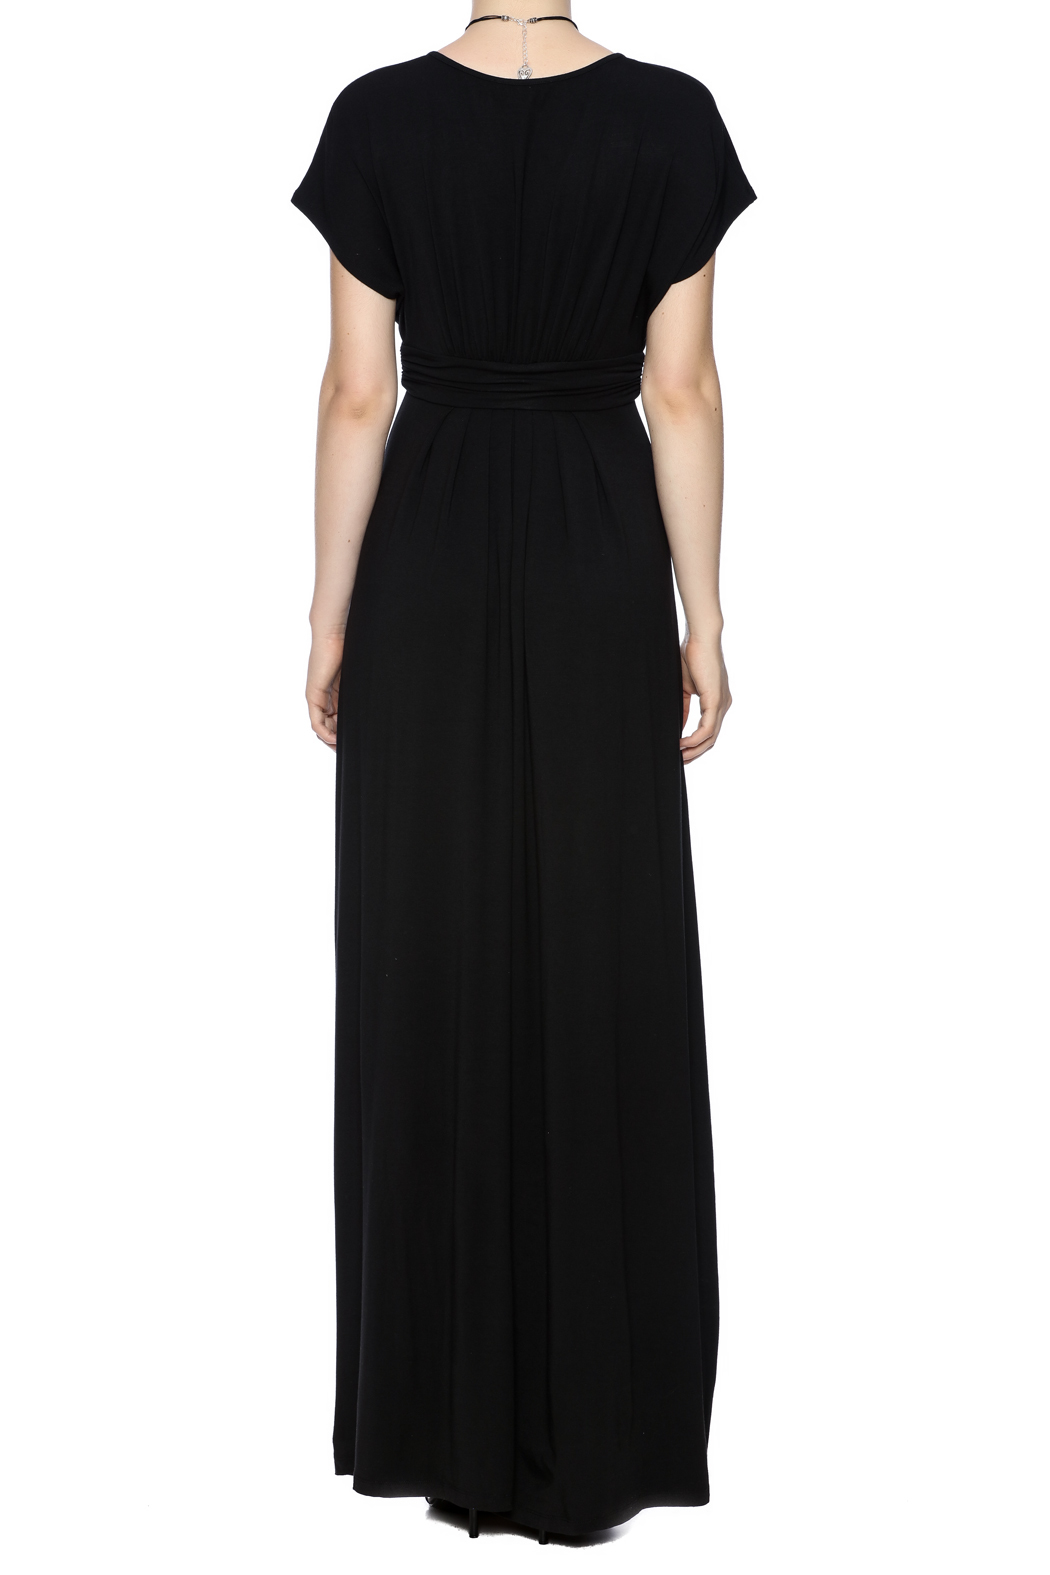 Tart Collections Empire Maxi Dress - Back Cropped Image